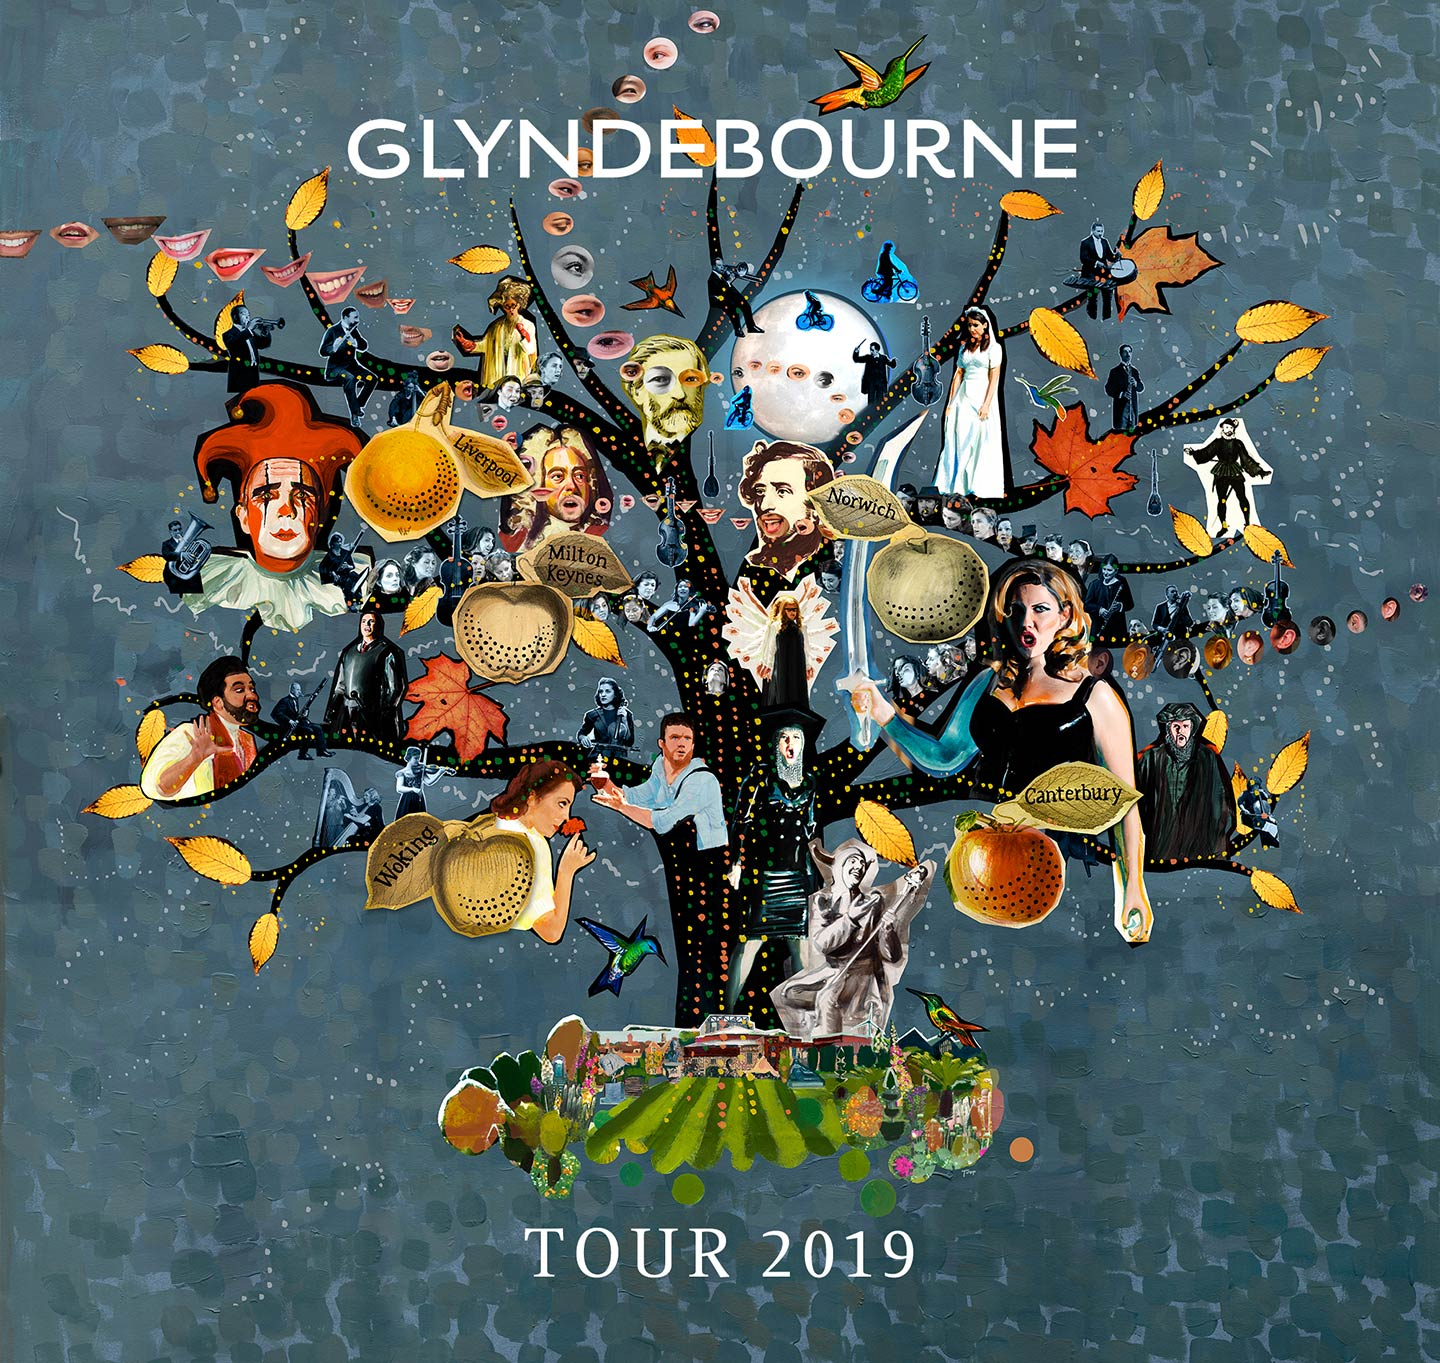 Glyndebourne Tour 2019 illustration featuring a tree with opera characters composers and musicians